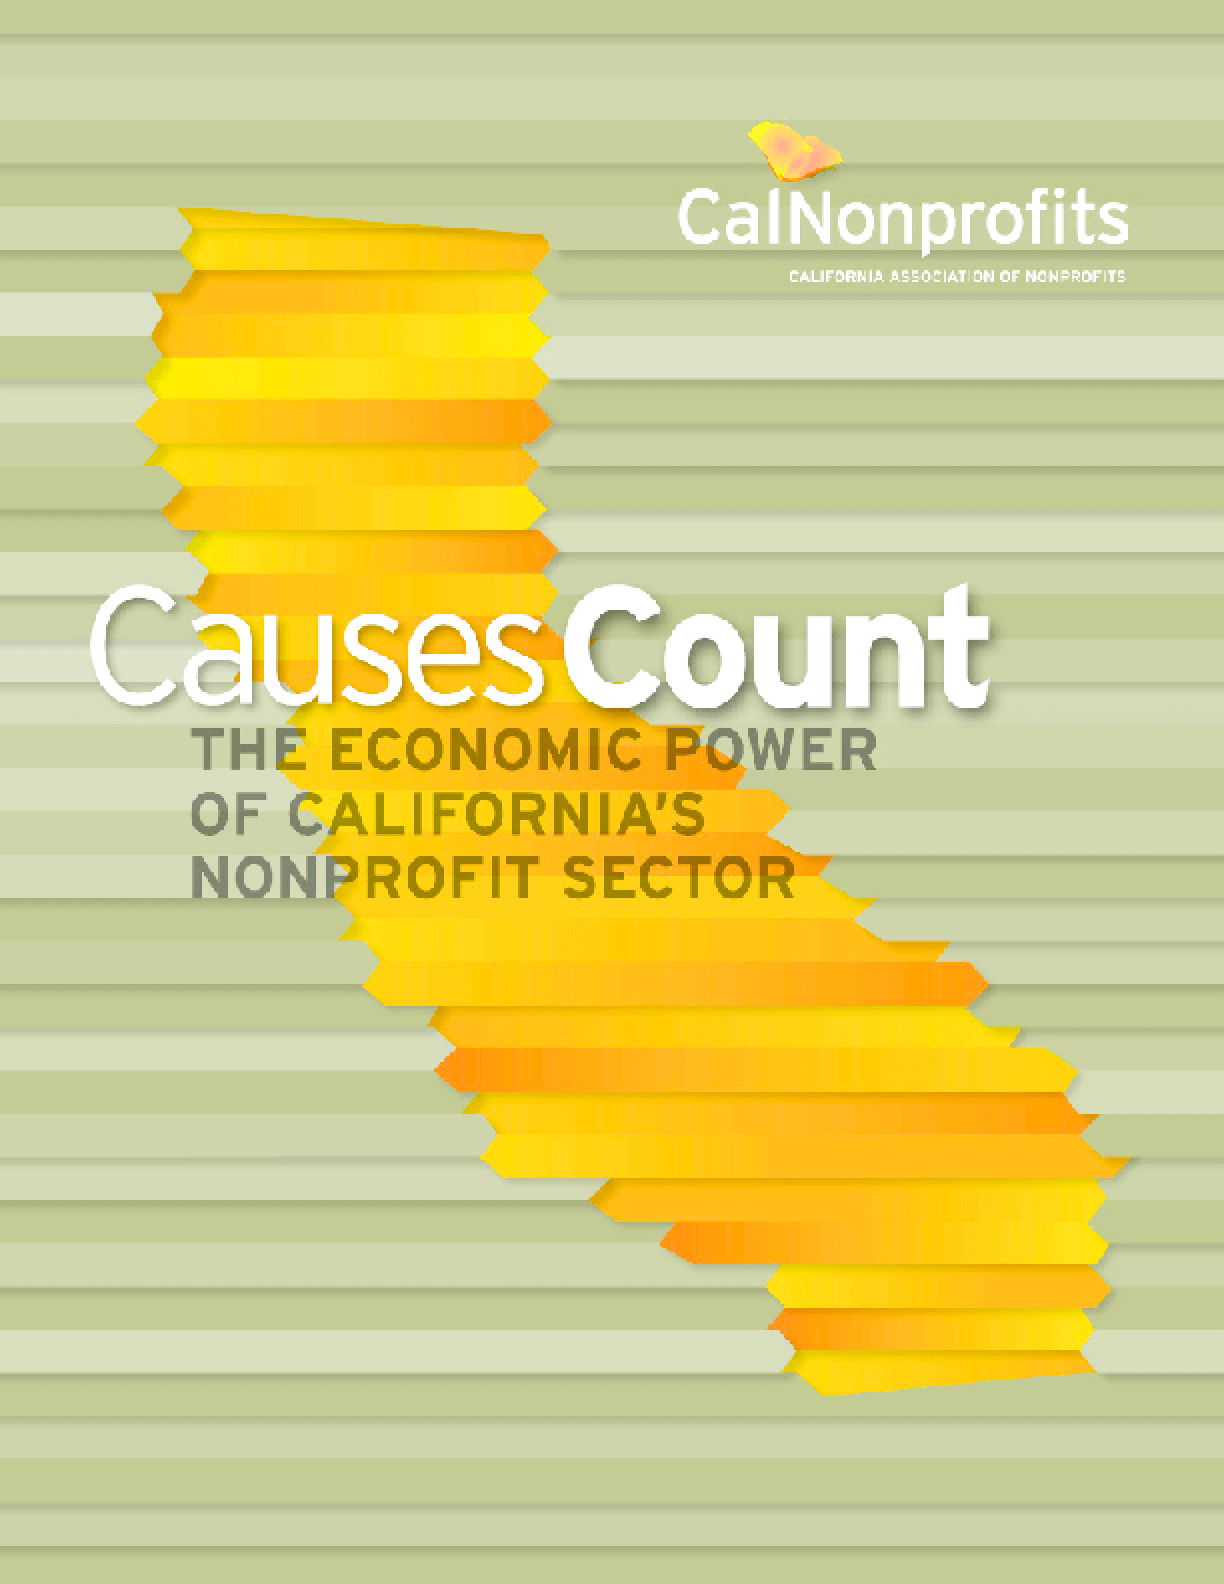 Causes Count: The Economic Power of California's Nonprofit Sector